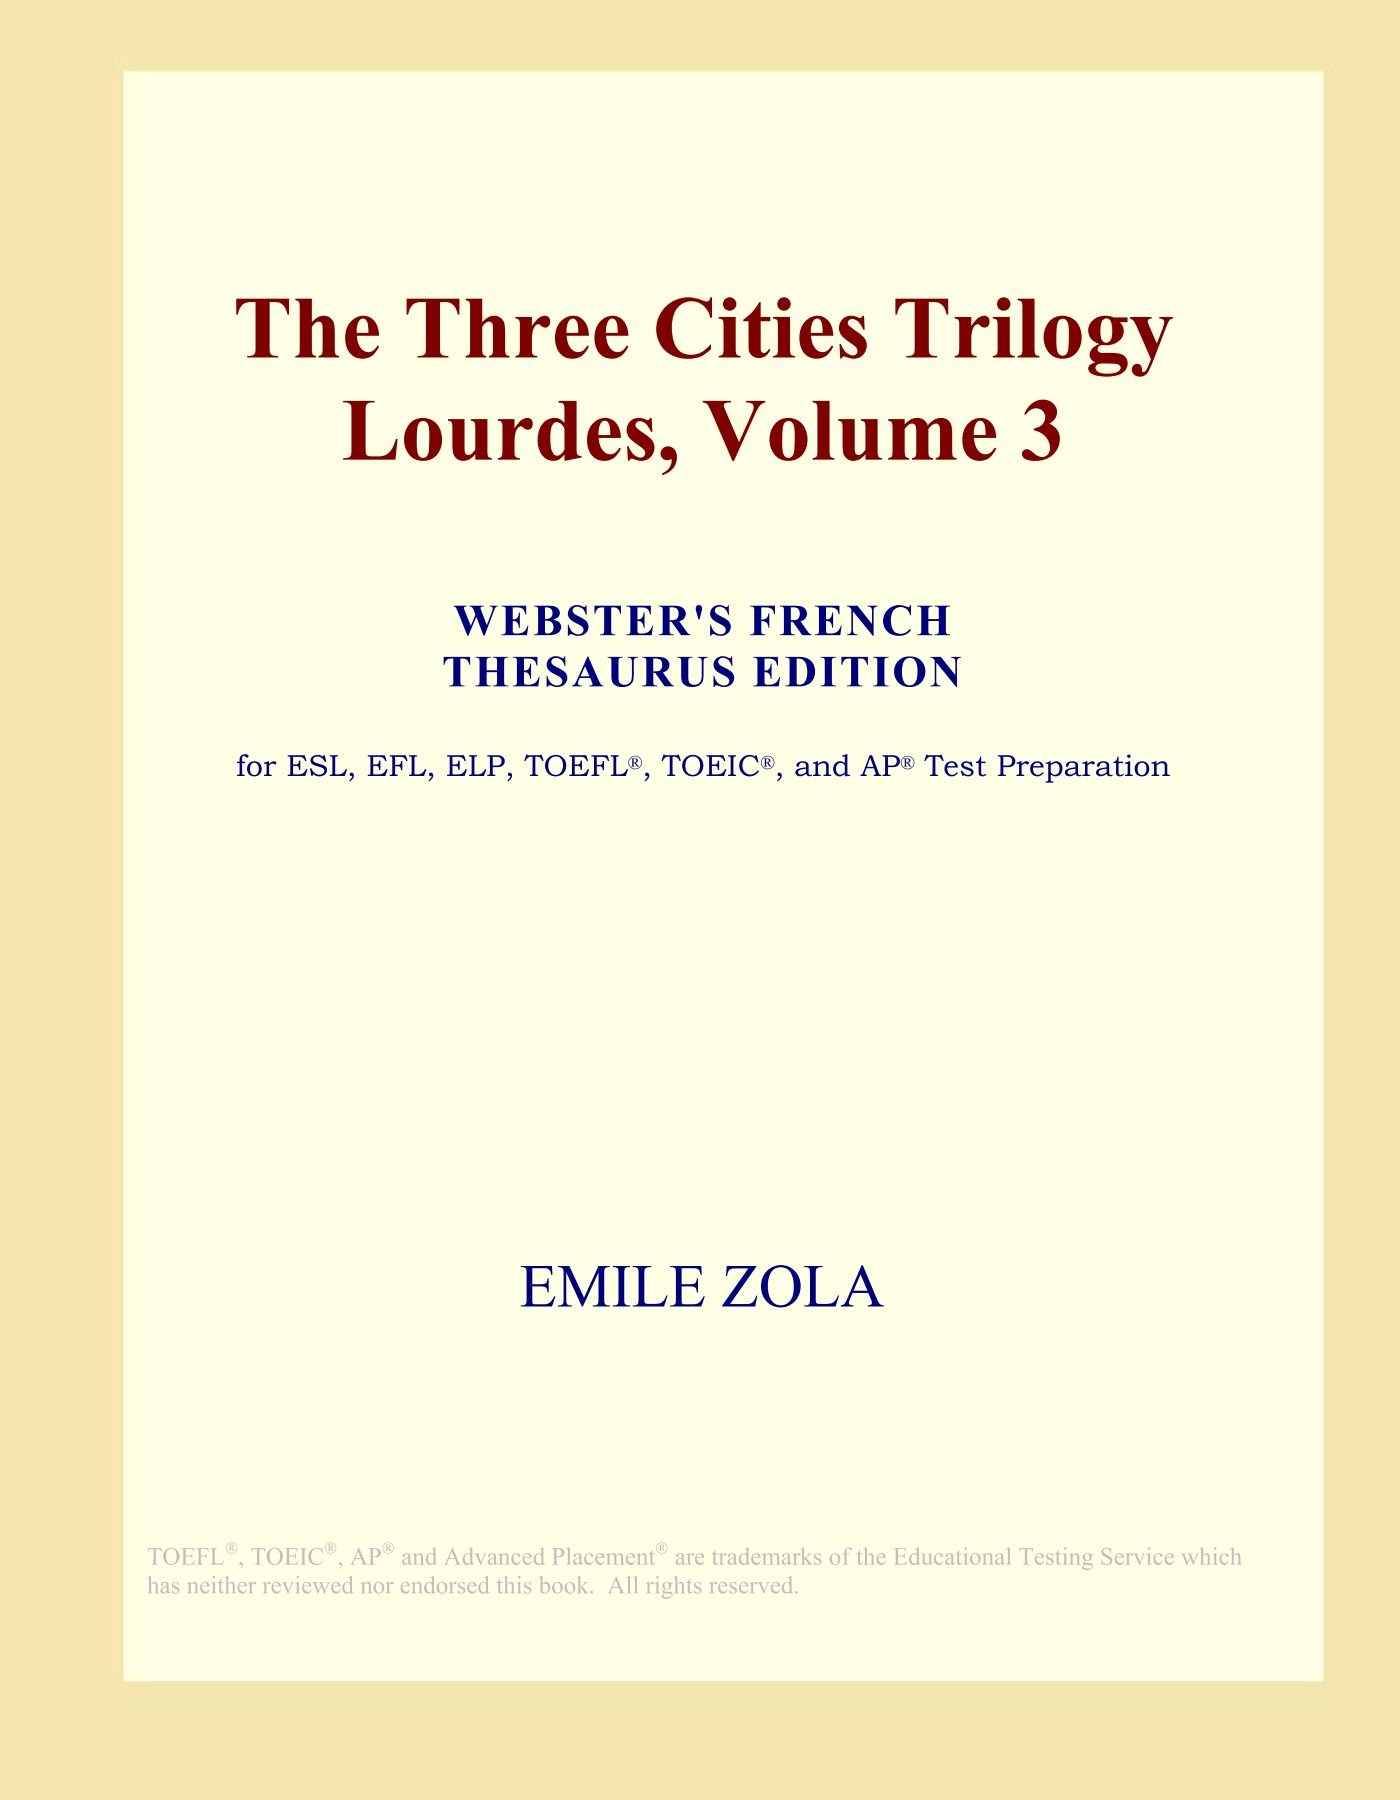 Read Online The Three Cities Trilogy Lourdes, Volume 3 (Webster's French Thesaurus Edition) PDF